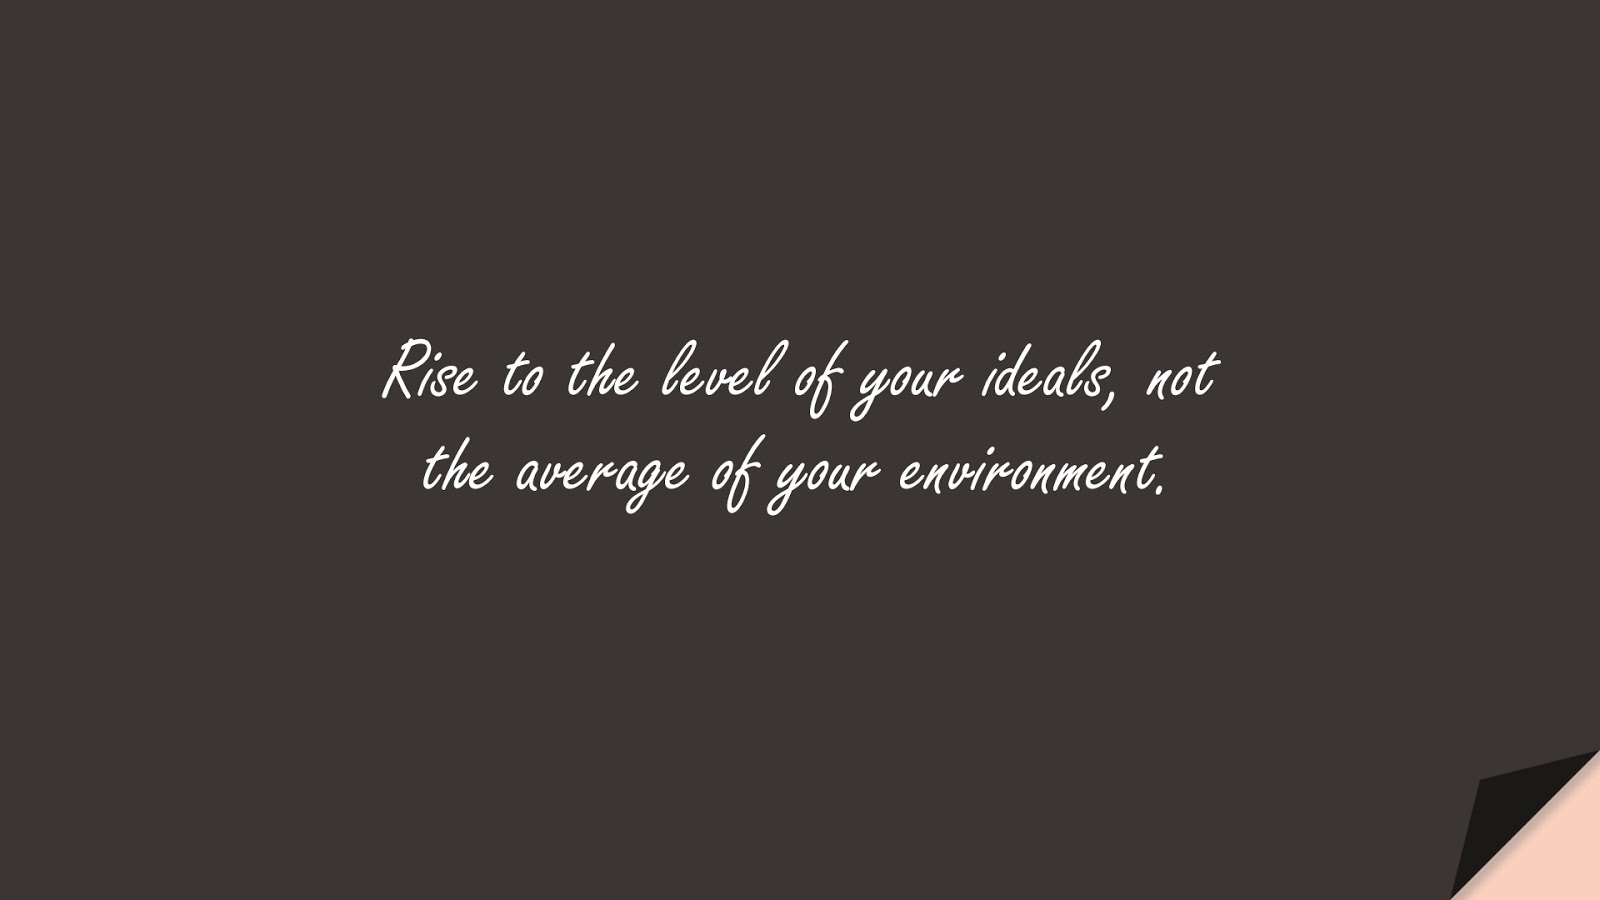 Rise to the level of your ideals, not the average of your environment.FALSE